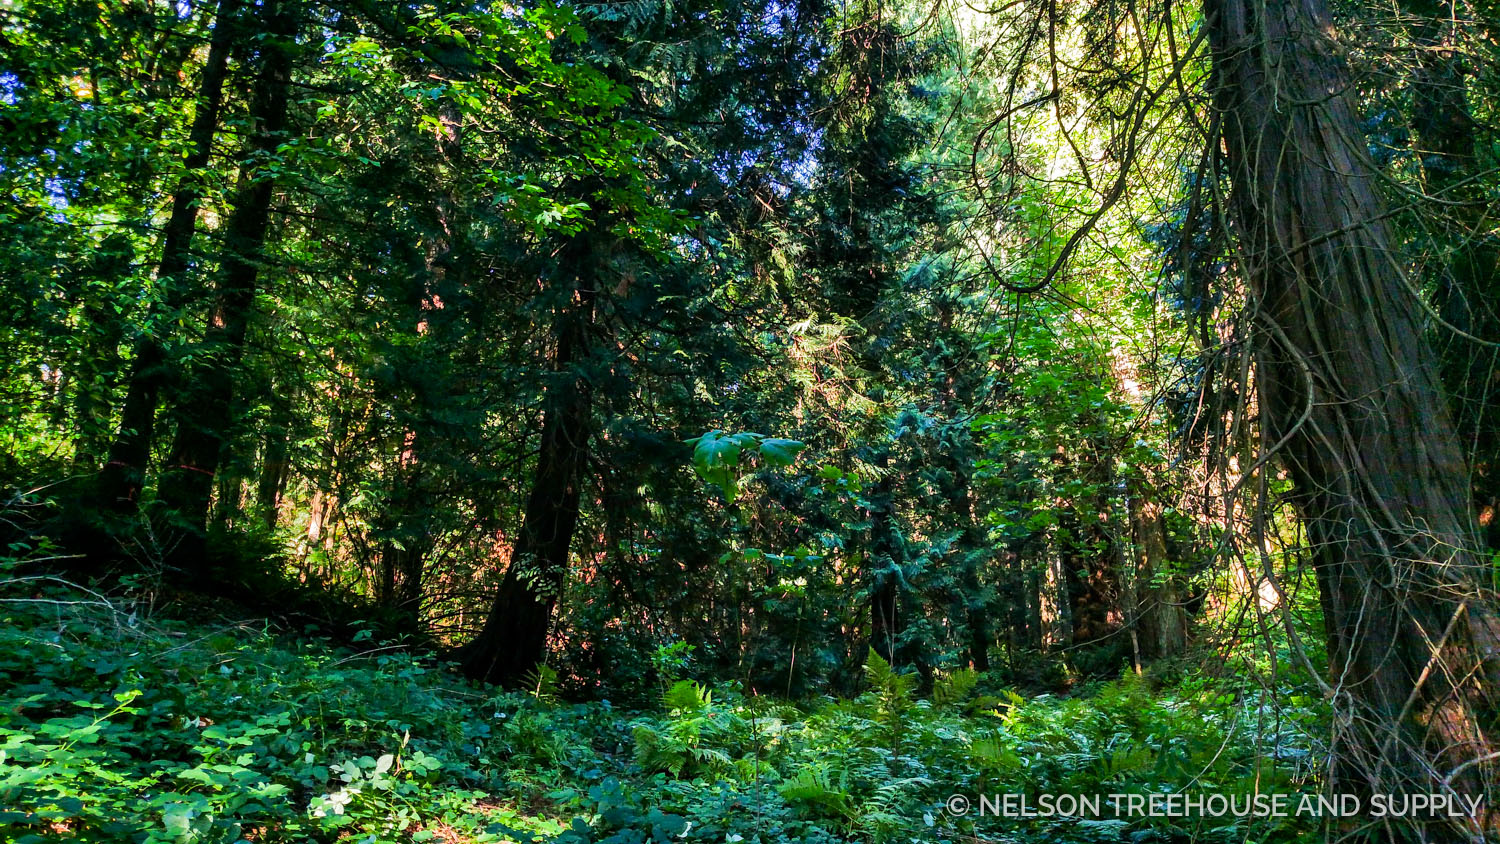 The beauty of the forest at treehouse resort and spa takes my breath away.